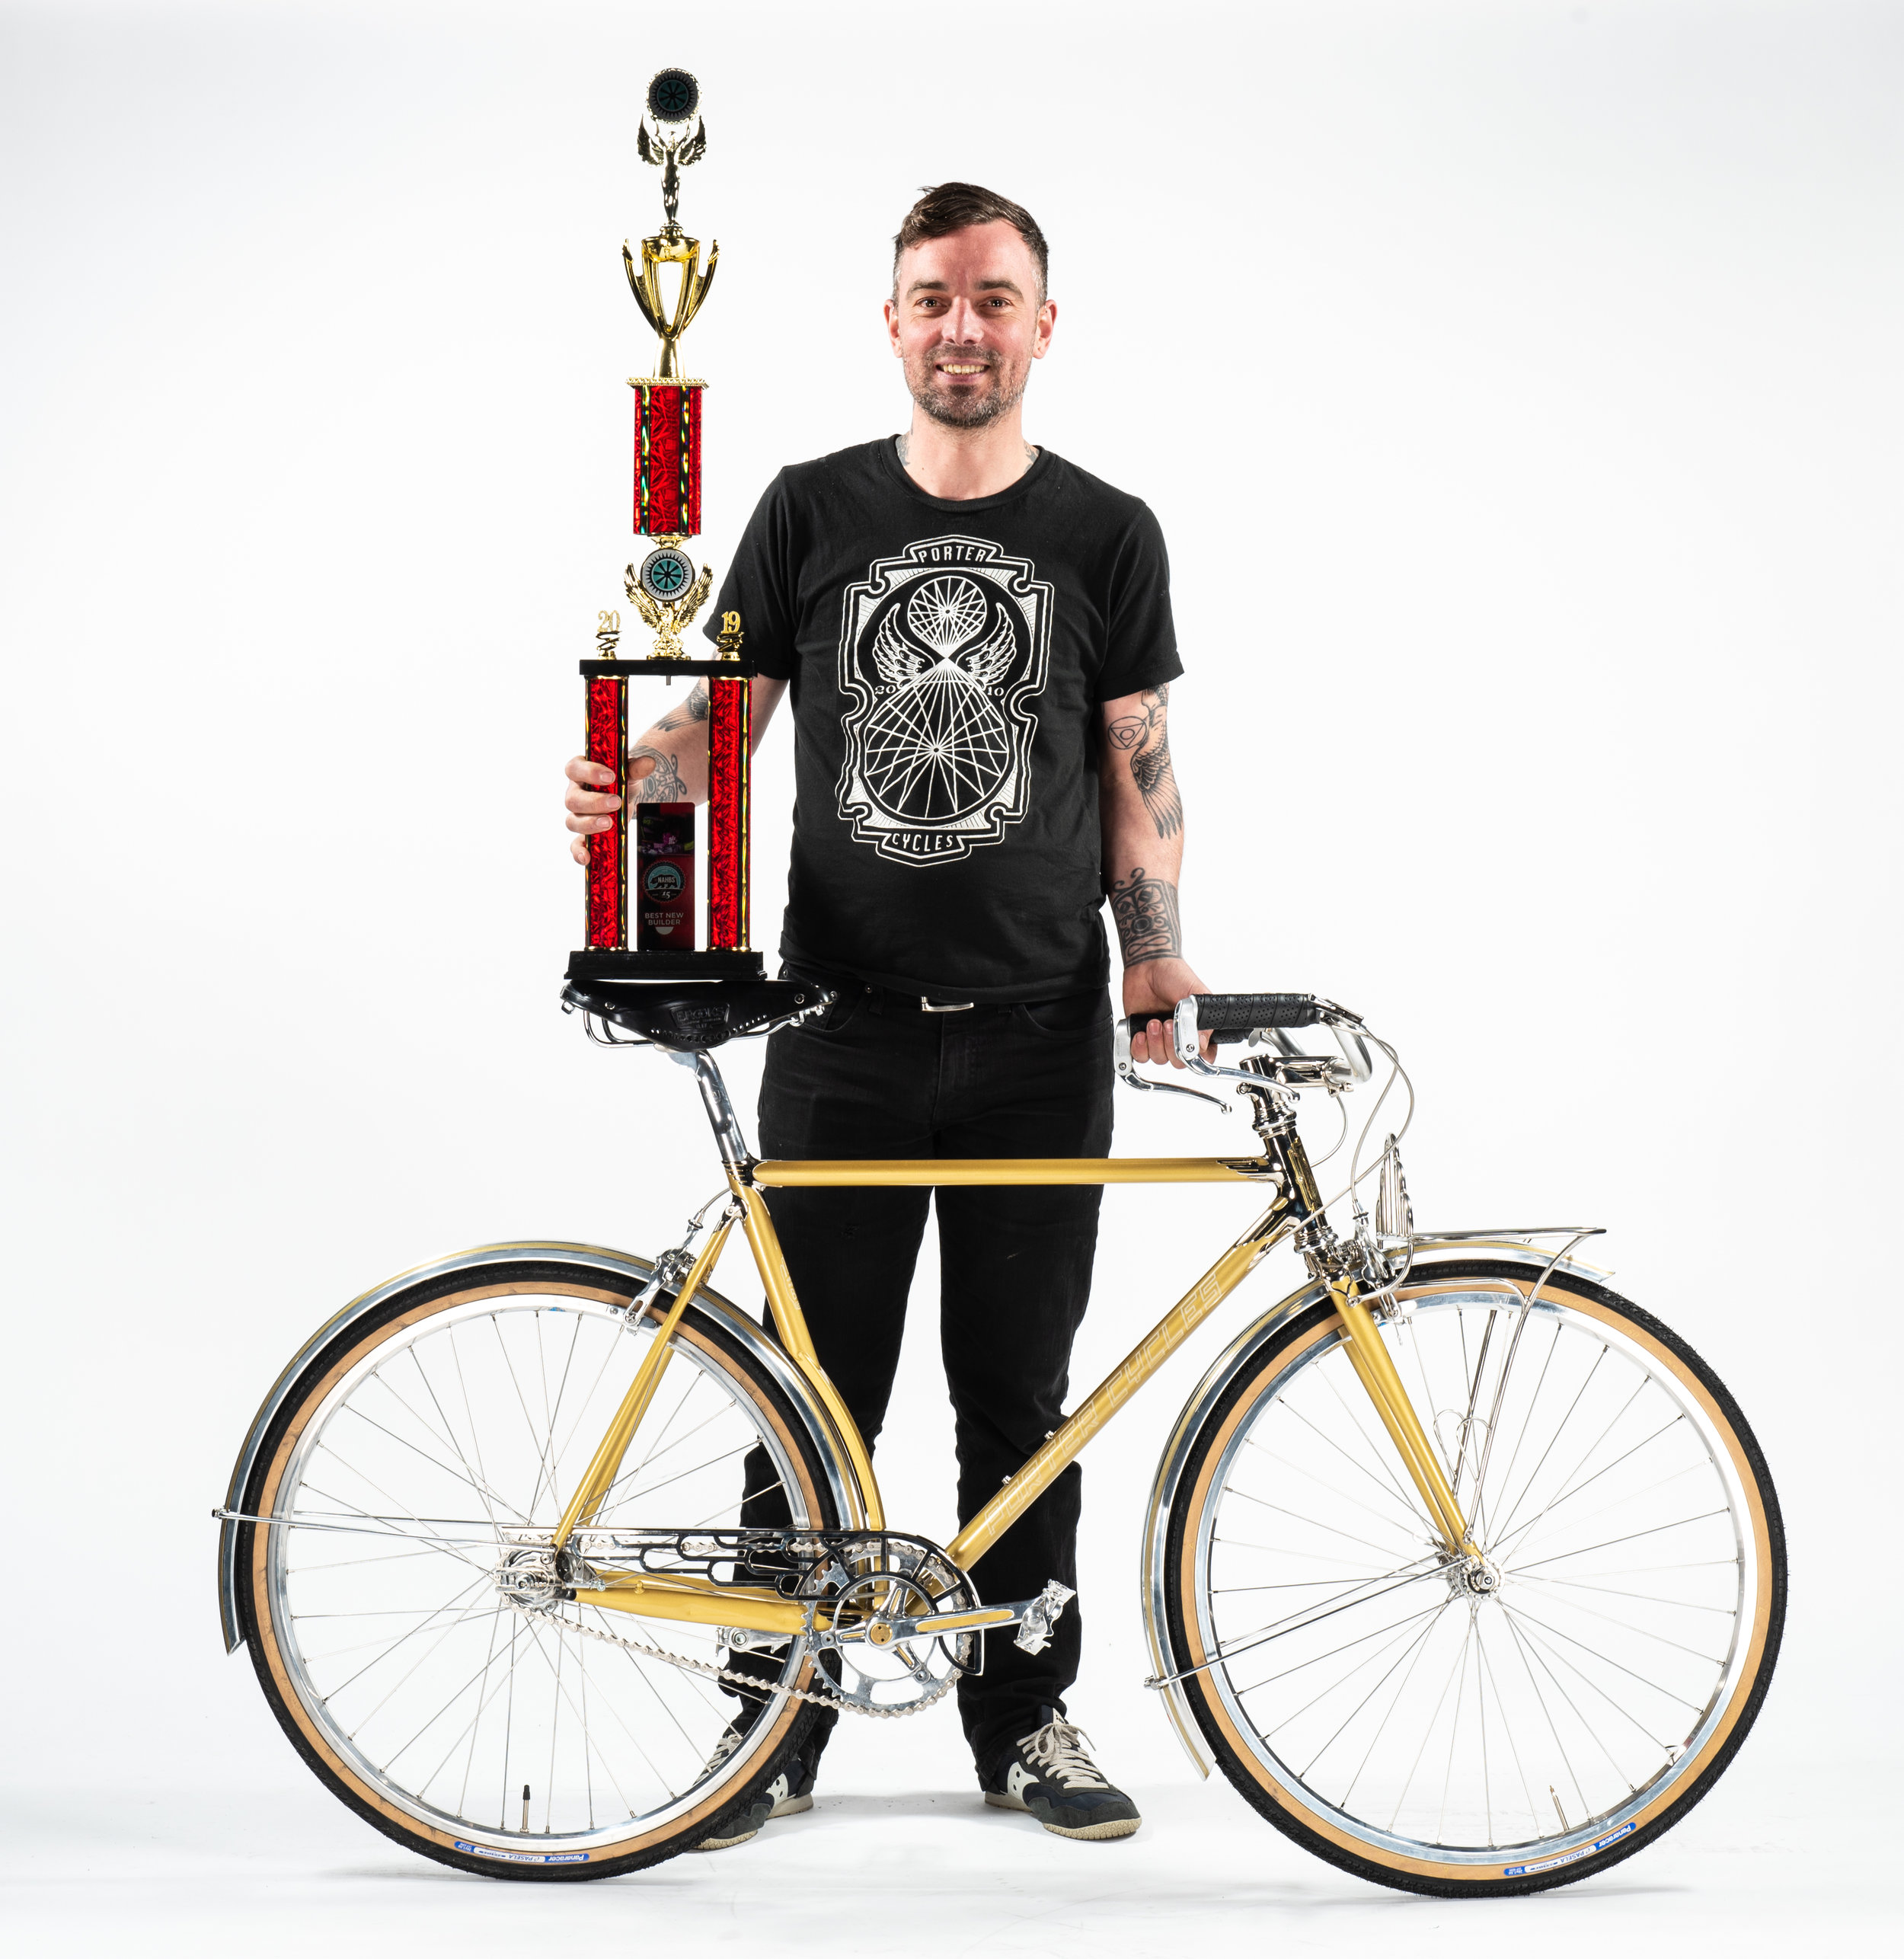 porter_best_new_builder_nahbs2019-bq-5.jpg